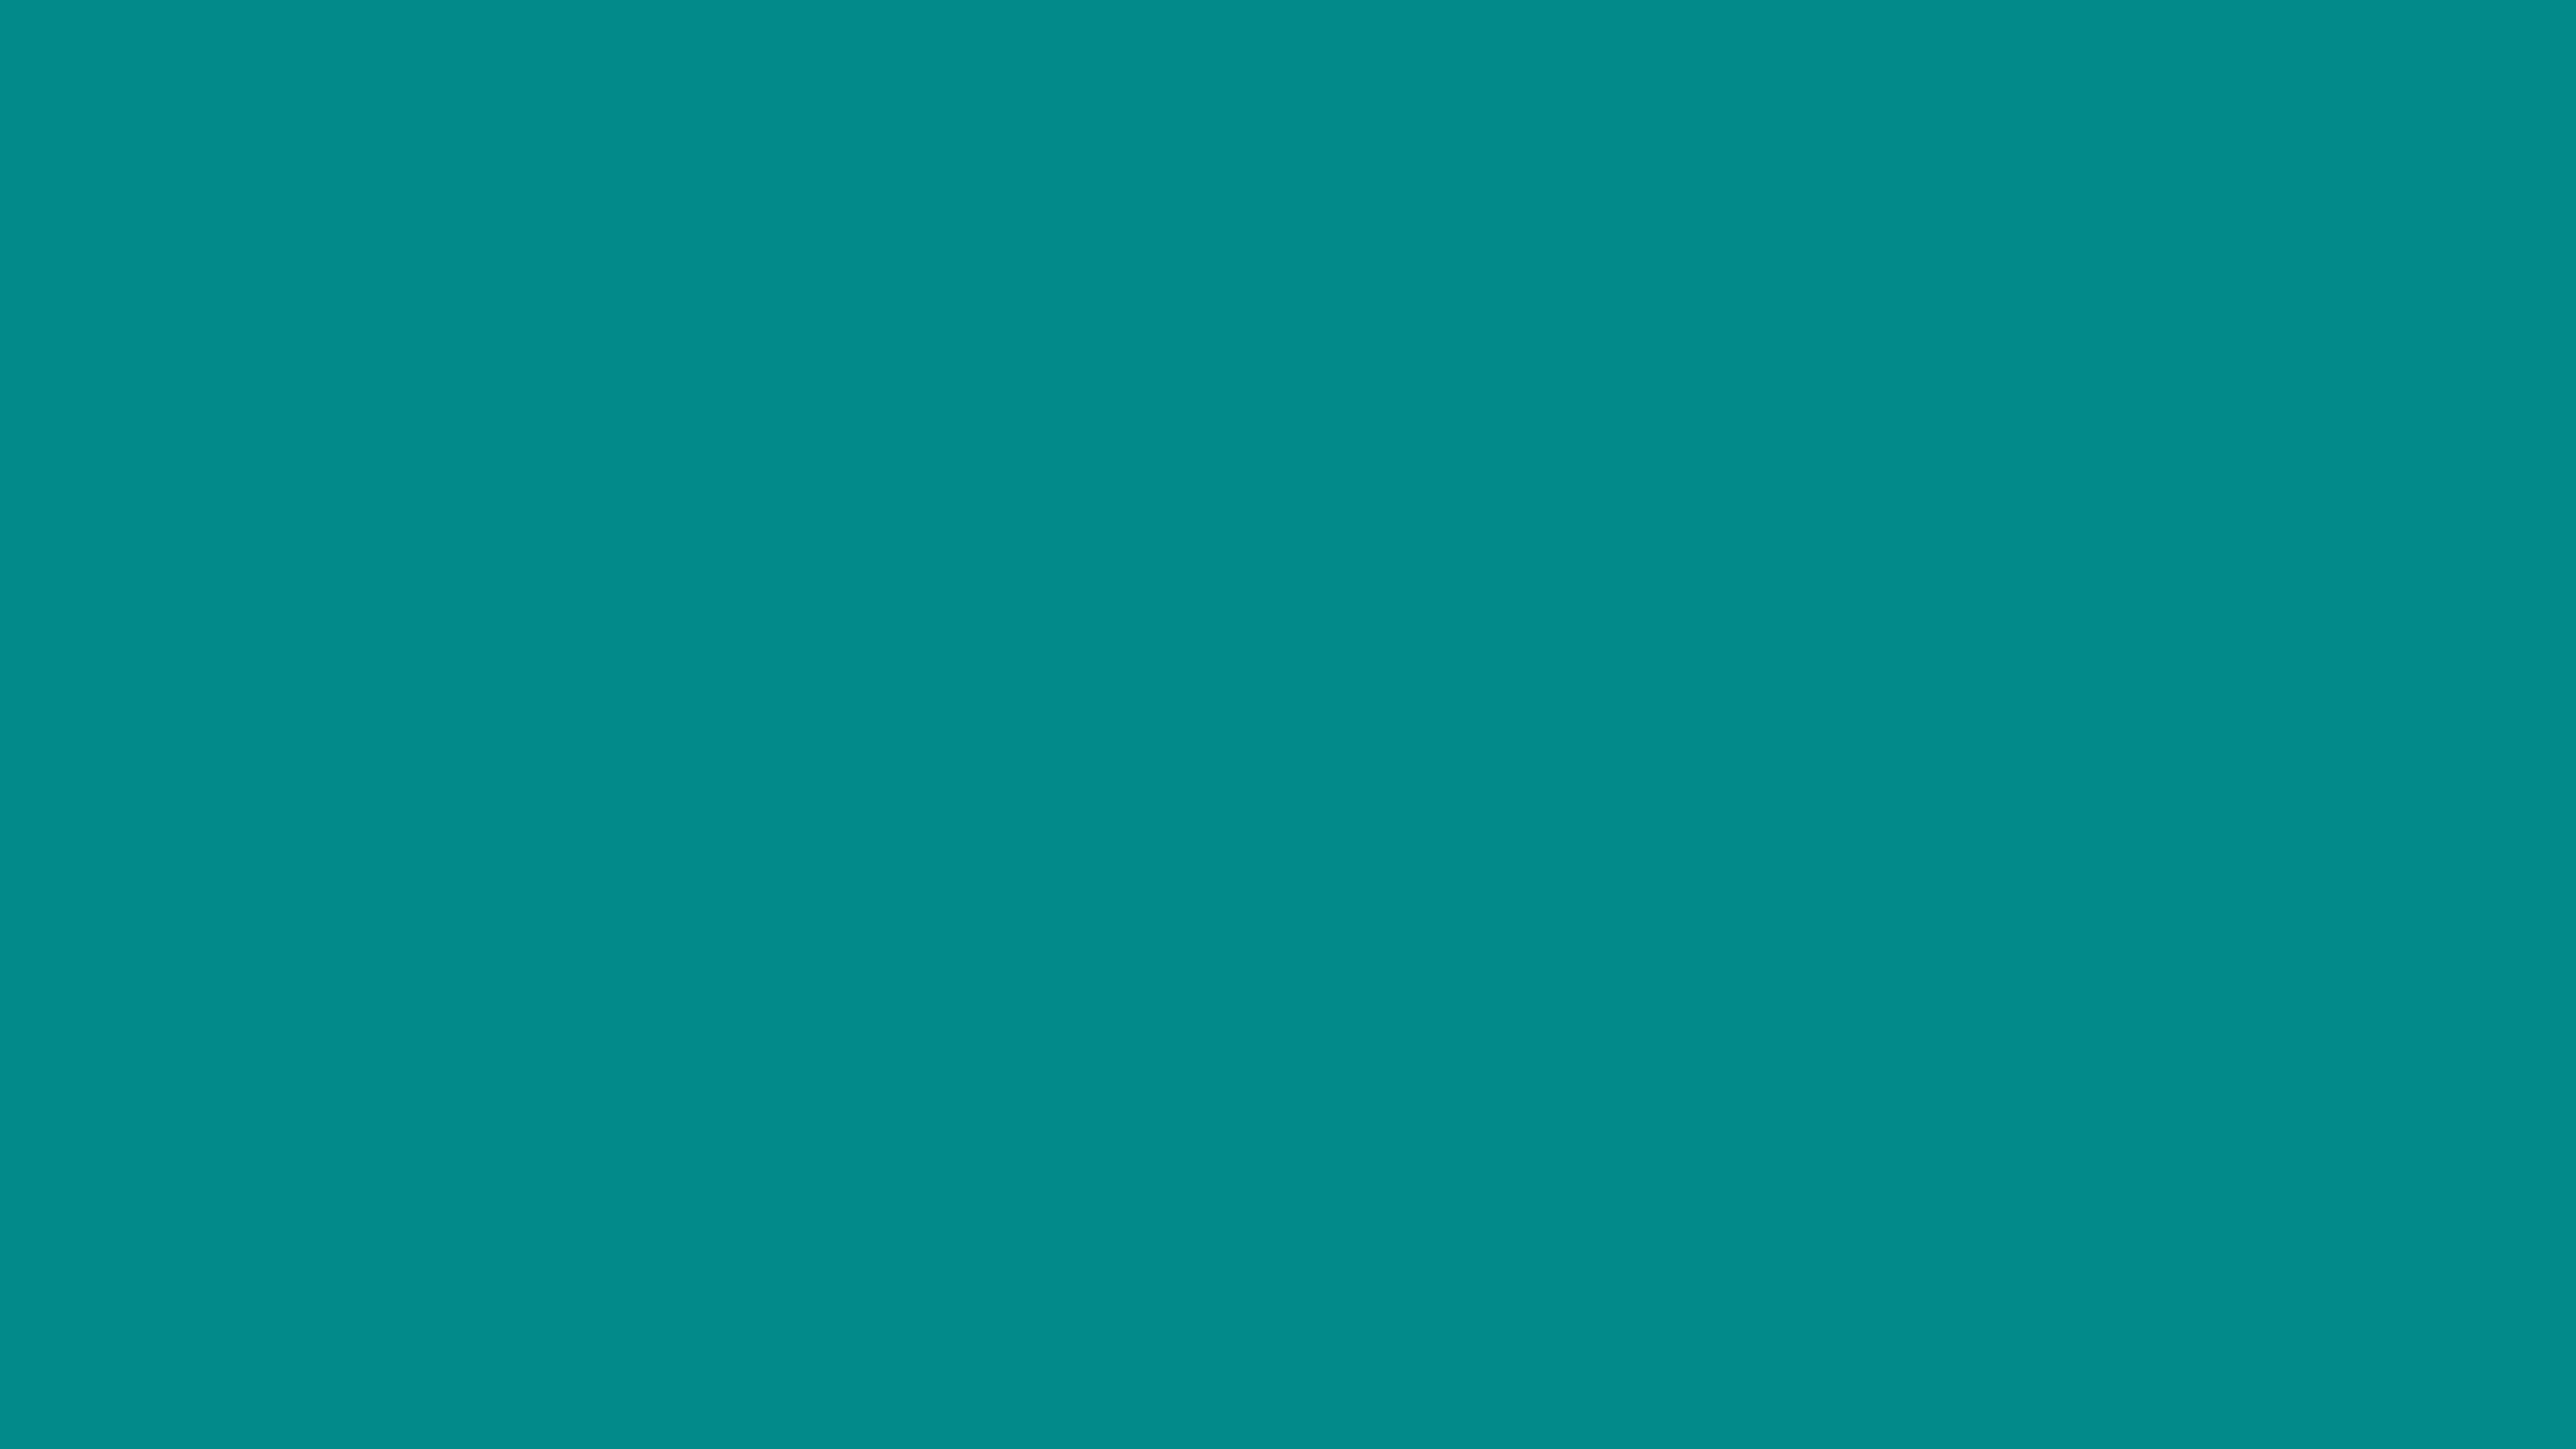 5120x2880 Dark Cyan Solid Color Background